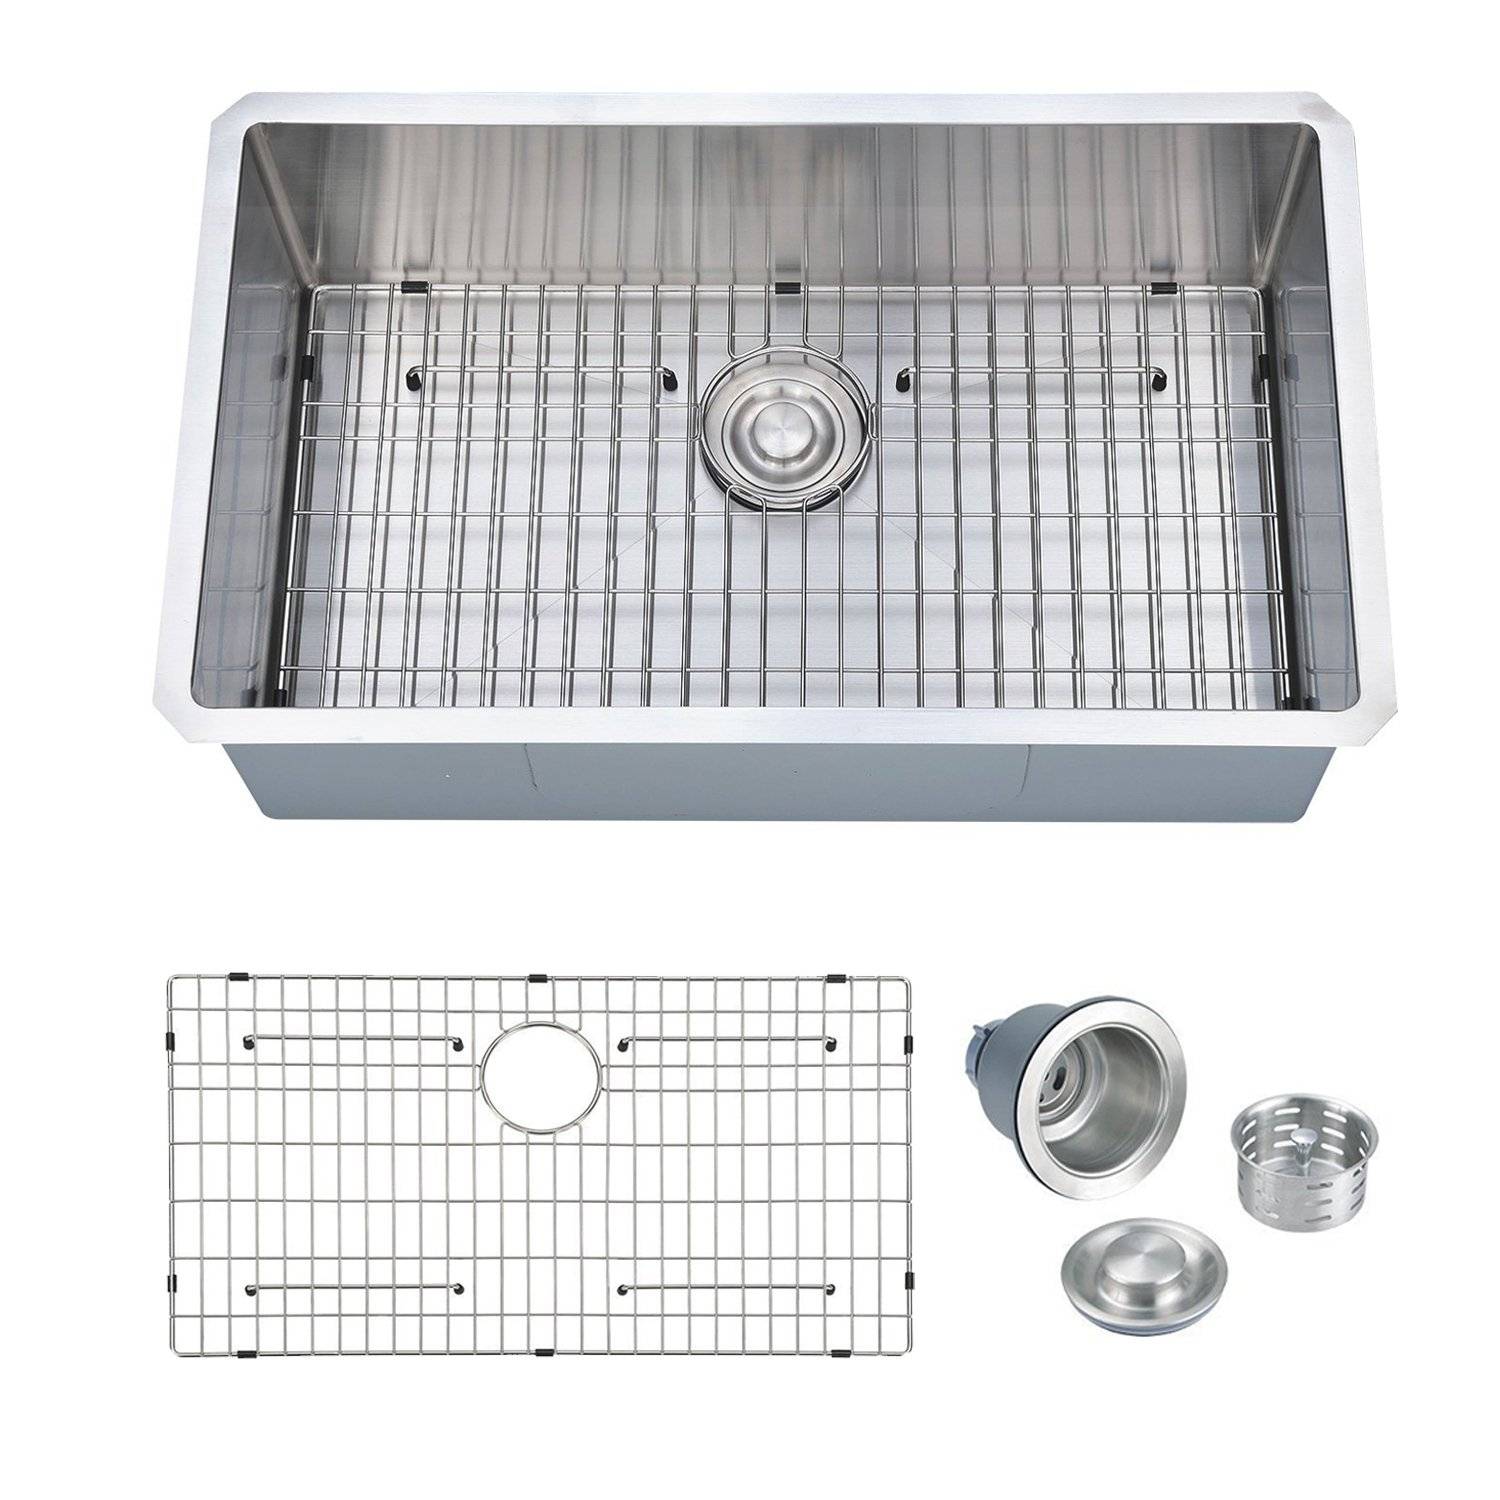 PRIMART Handcrafted 30'' Inch Single Bowl Stainless Steel Undermount 16 Gauge Kitchen Sink With Bottom Grid by PRIMART